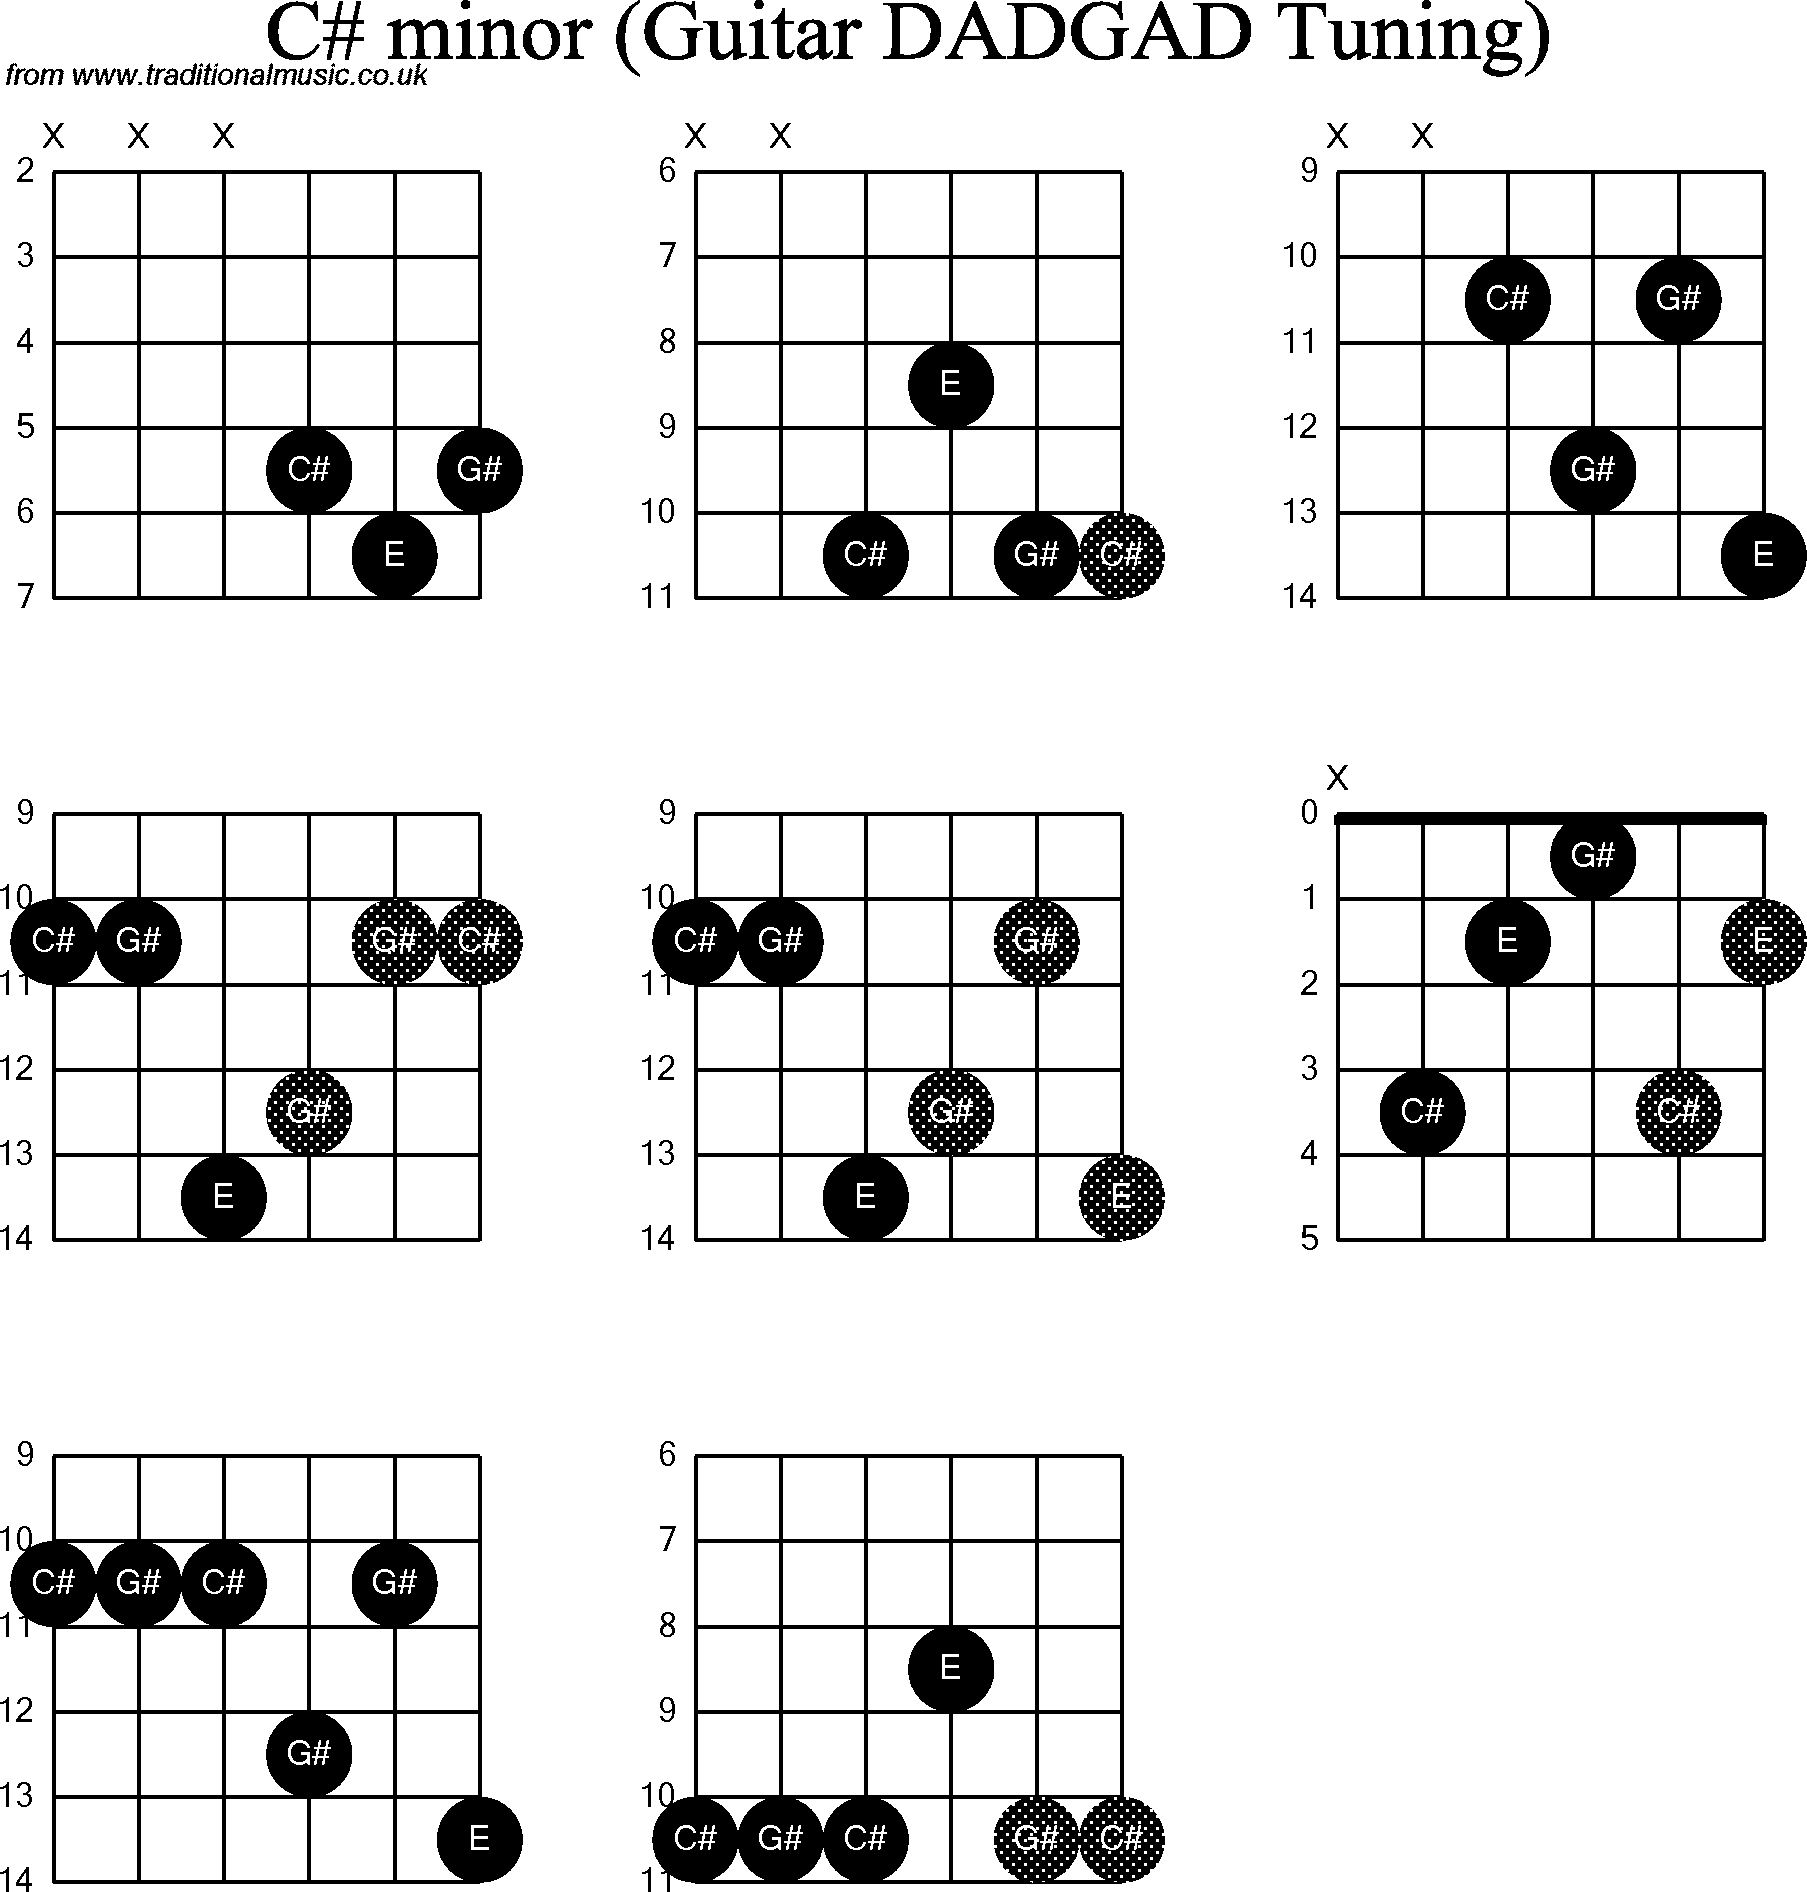 Chord Diagrams D Modal Guitar Dadgad C Sharp Minor